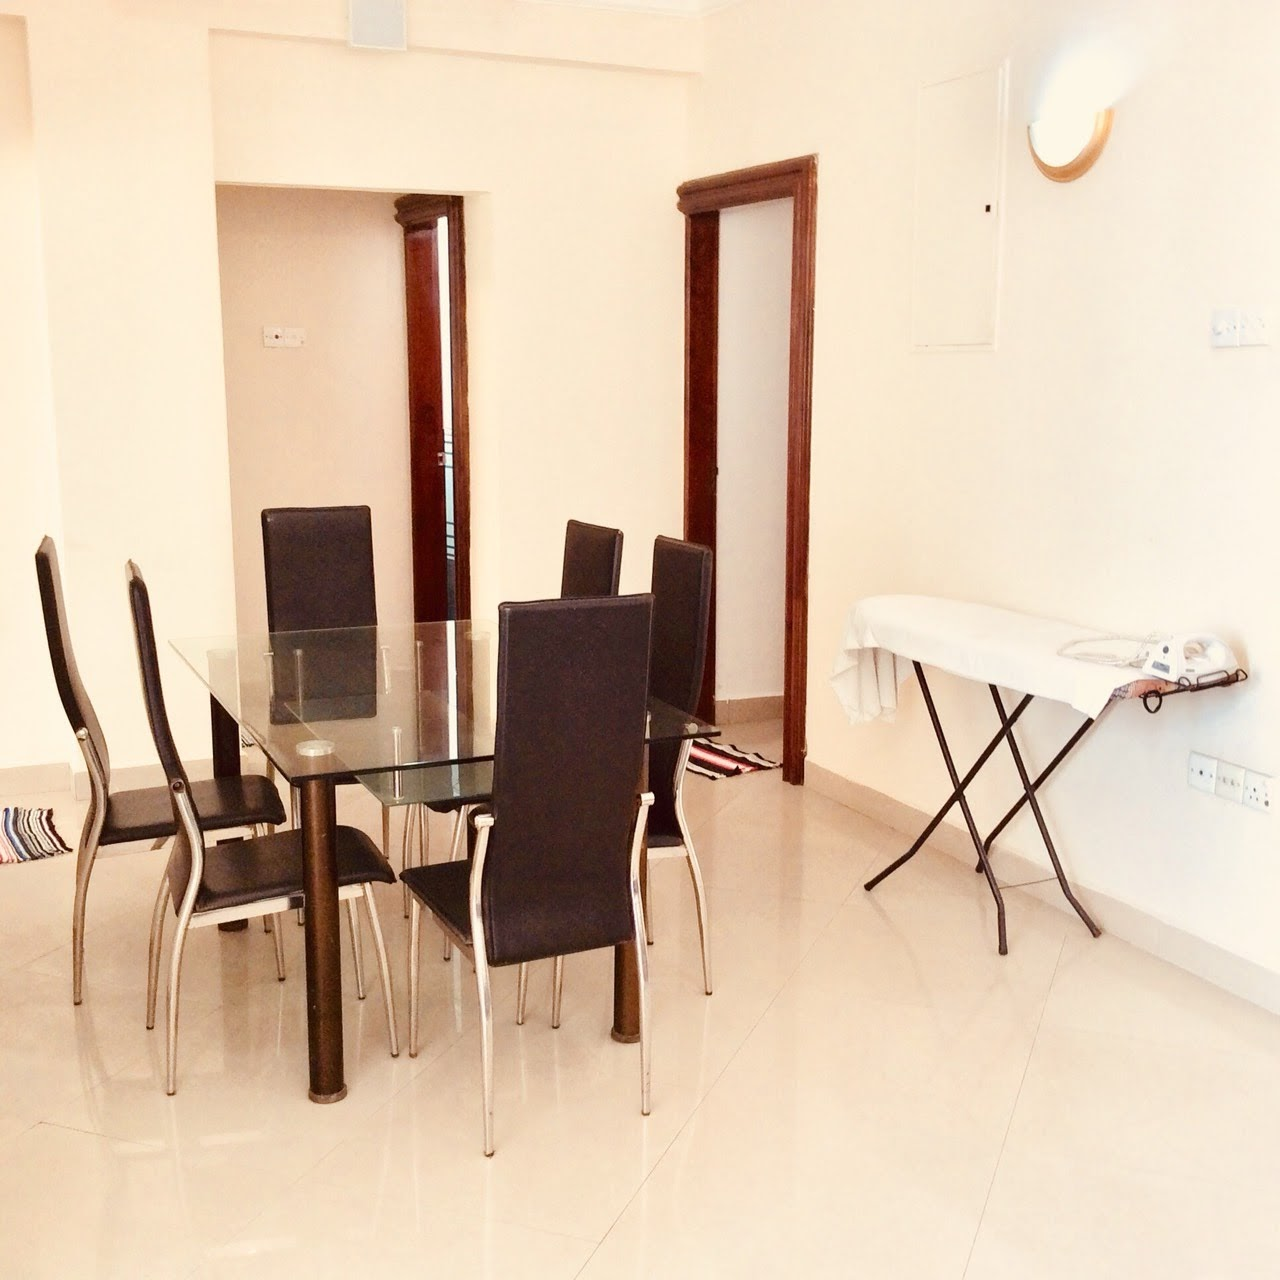 Furnished Apartments For Rent: 3 Room Furnished Apartment For Rent